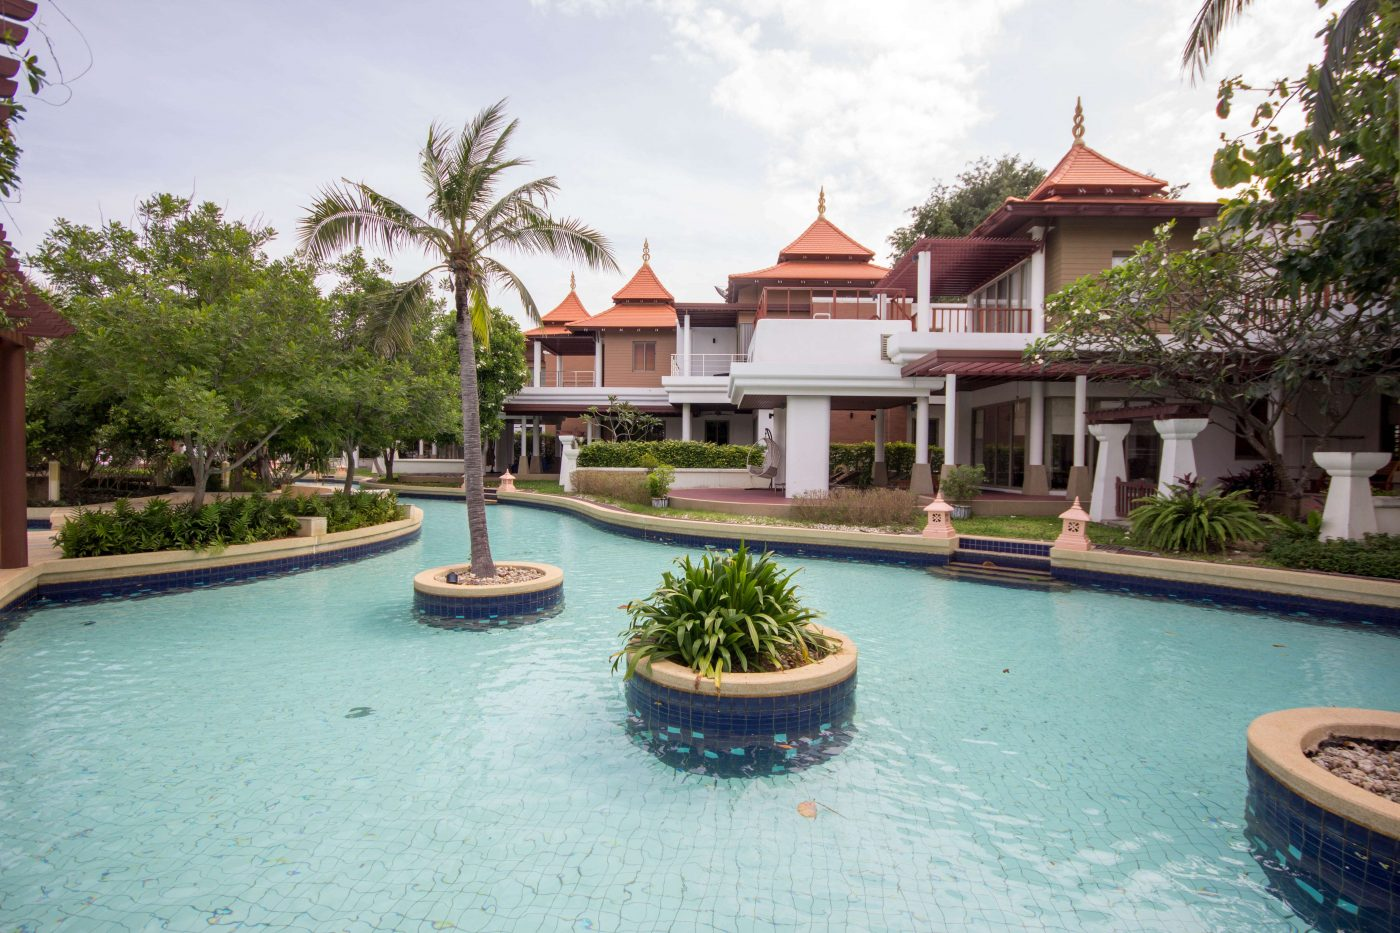 High Quality House for Sale at Boat House at Hua Hin District, Prachuap Khiri Khan, Thailand